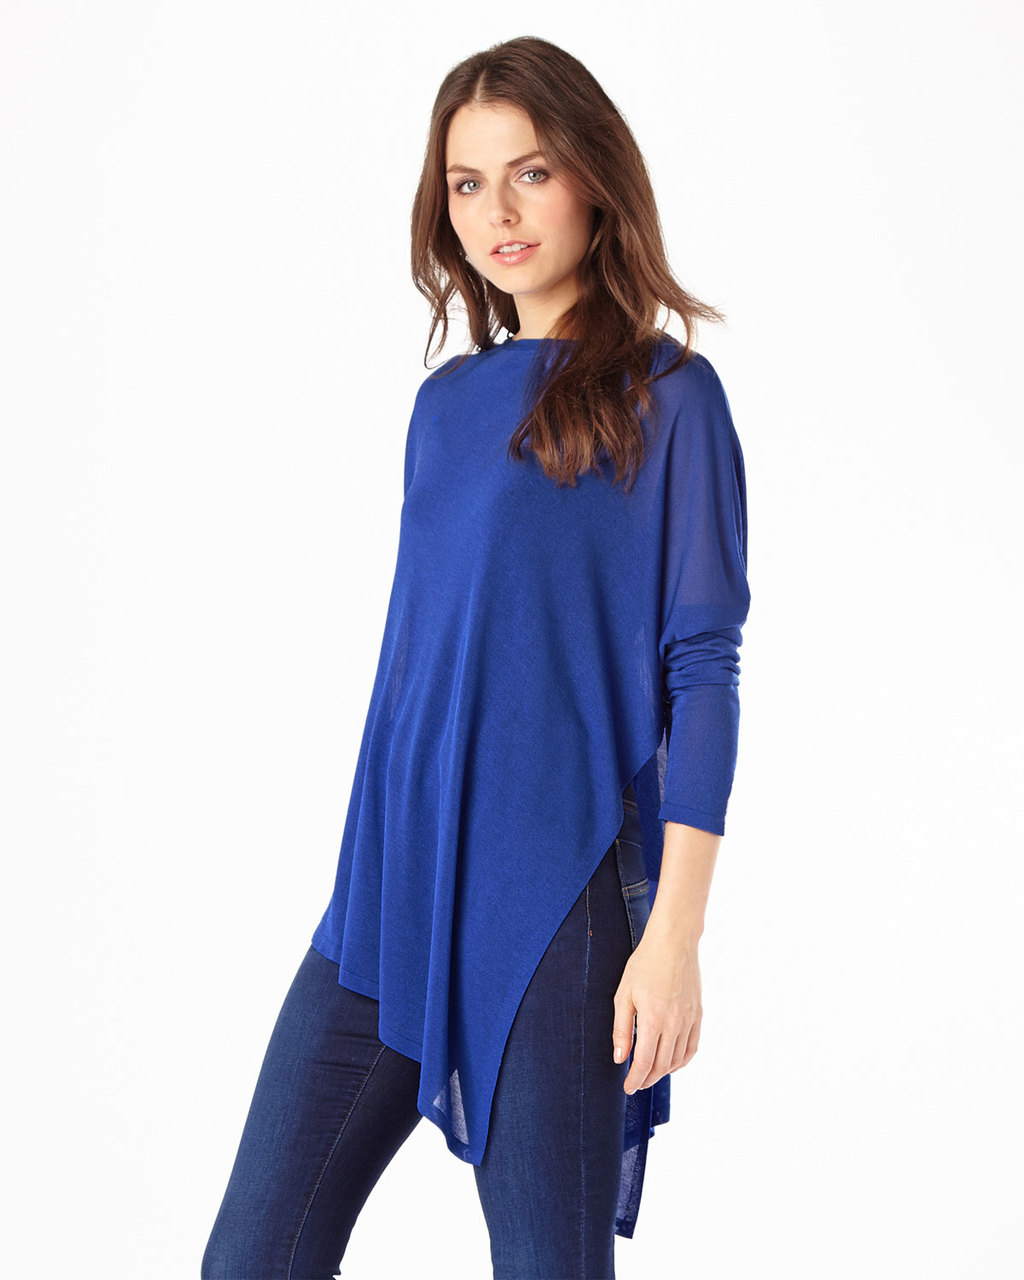 Sheer Melinda Knit - neckline: slash/boat neckline; pattern: plain; length: below the bottom; style: standard; predominant colour: royal blue; occasions: casual; fibres: viscose/rayon - 100%; fit: loose; sleeve length: long sleeve; sleeve style: standard; pattern type: fabric; texture group: jersey - stretchy/drapey; season: s/s 2016